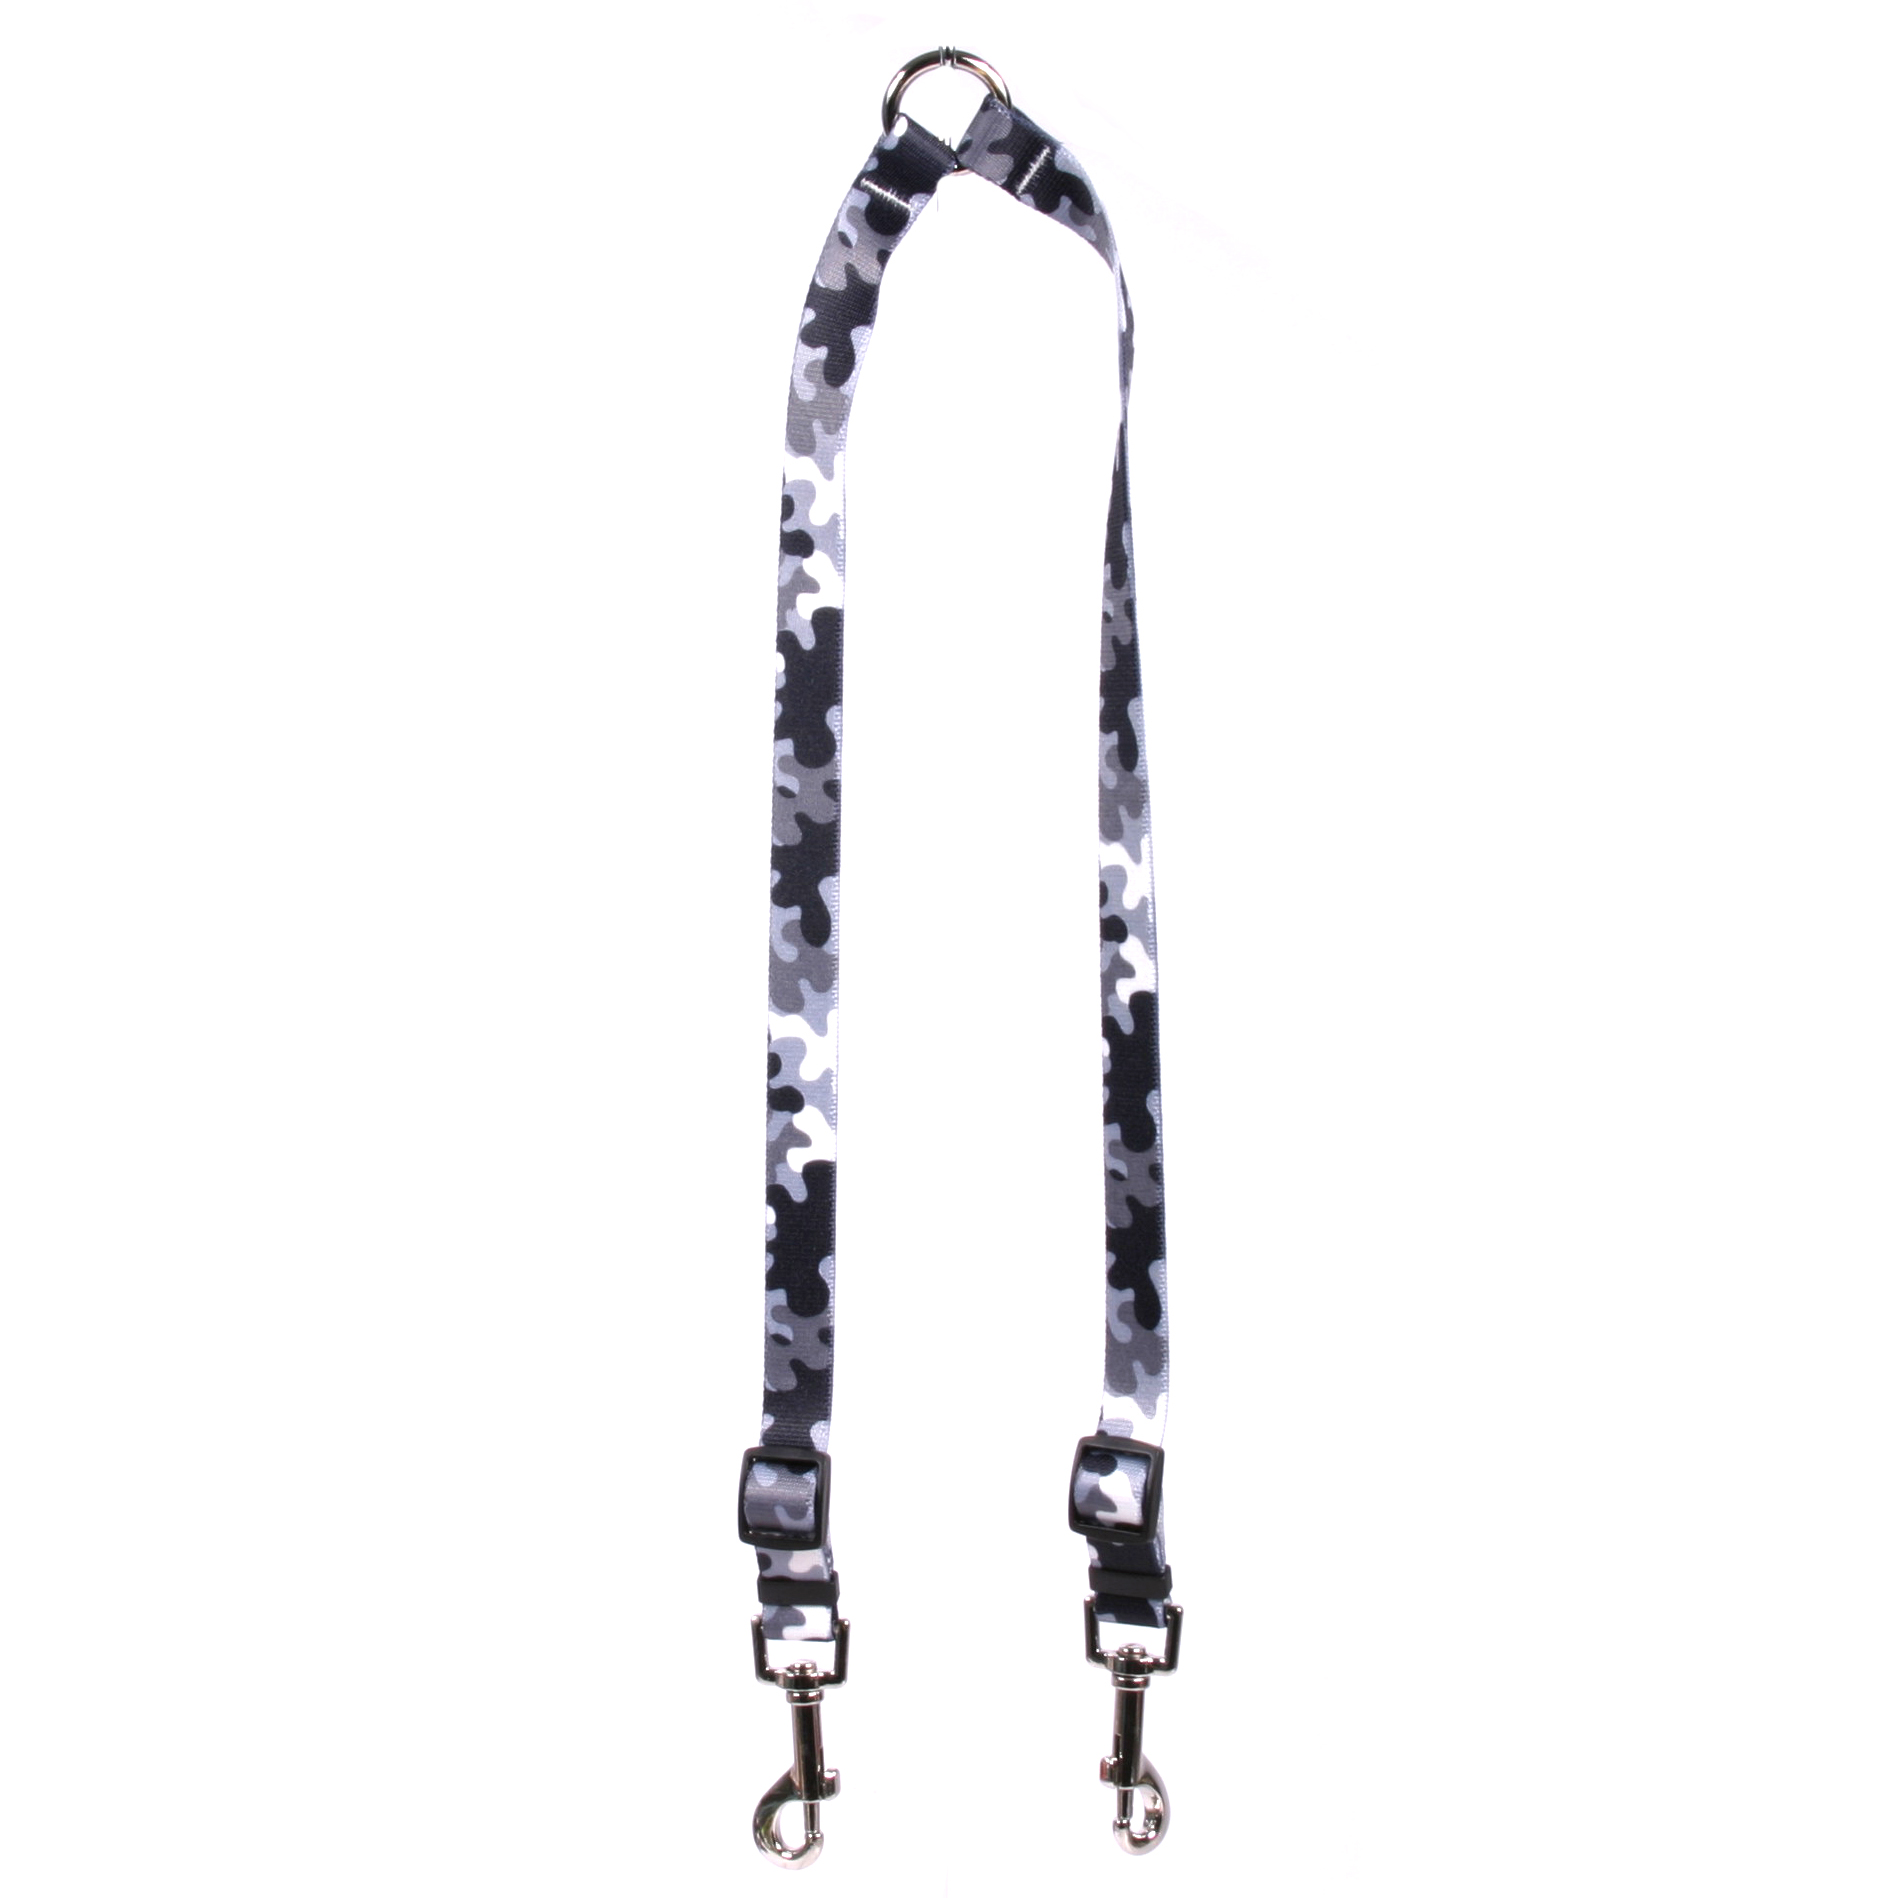 Black And White Camo Coupler Lead By Yellow Dog Design